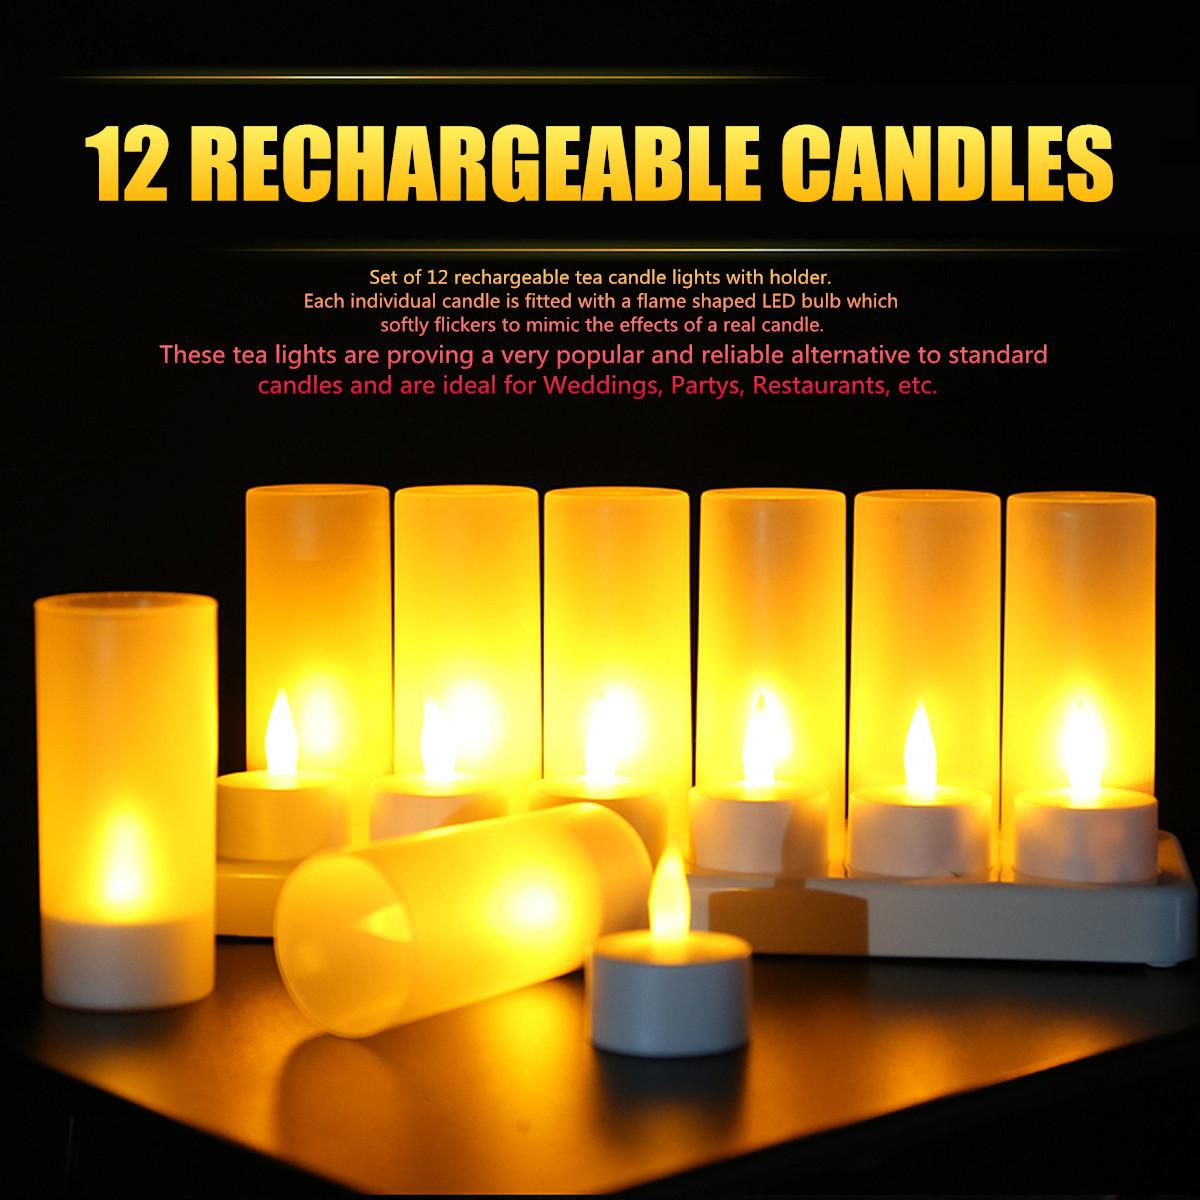 12pcs LED Candles Tea Lights Rechargeable Flickering Flame Shaped LED Bulb for Party Wedding Dinner With Holder US/EU/UK/AU Plug T200601